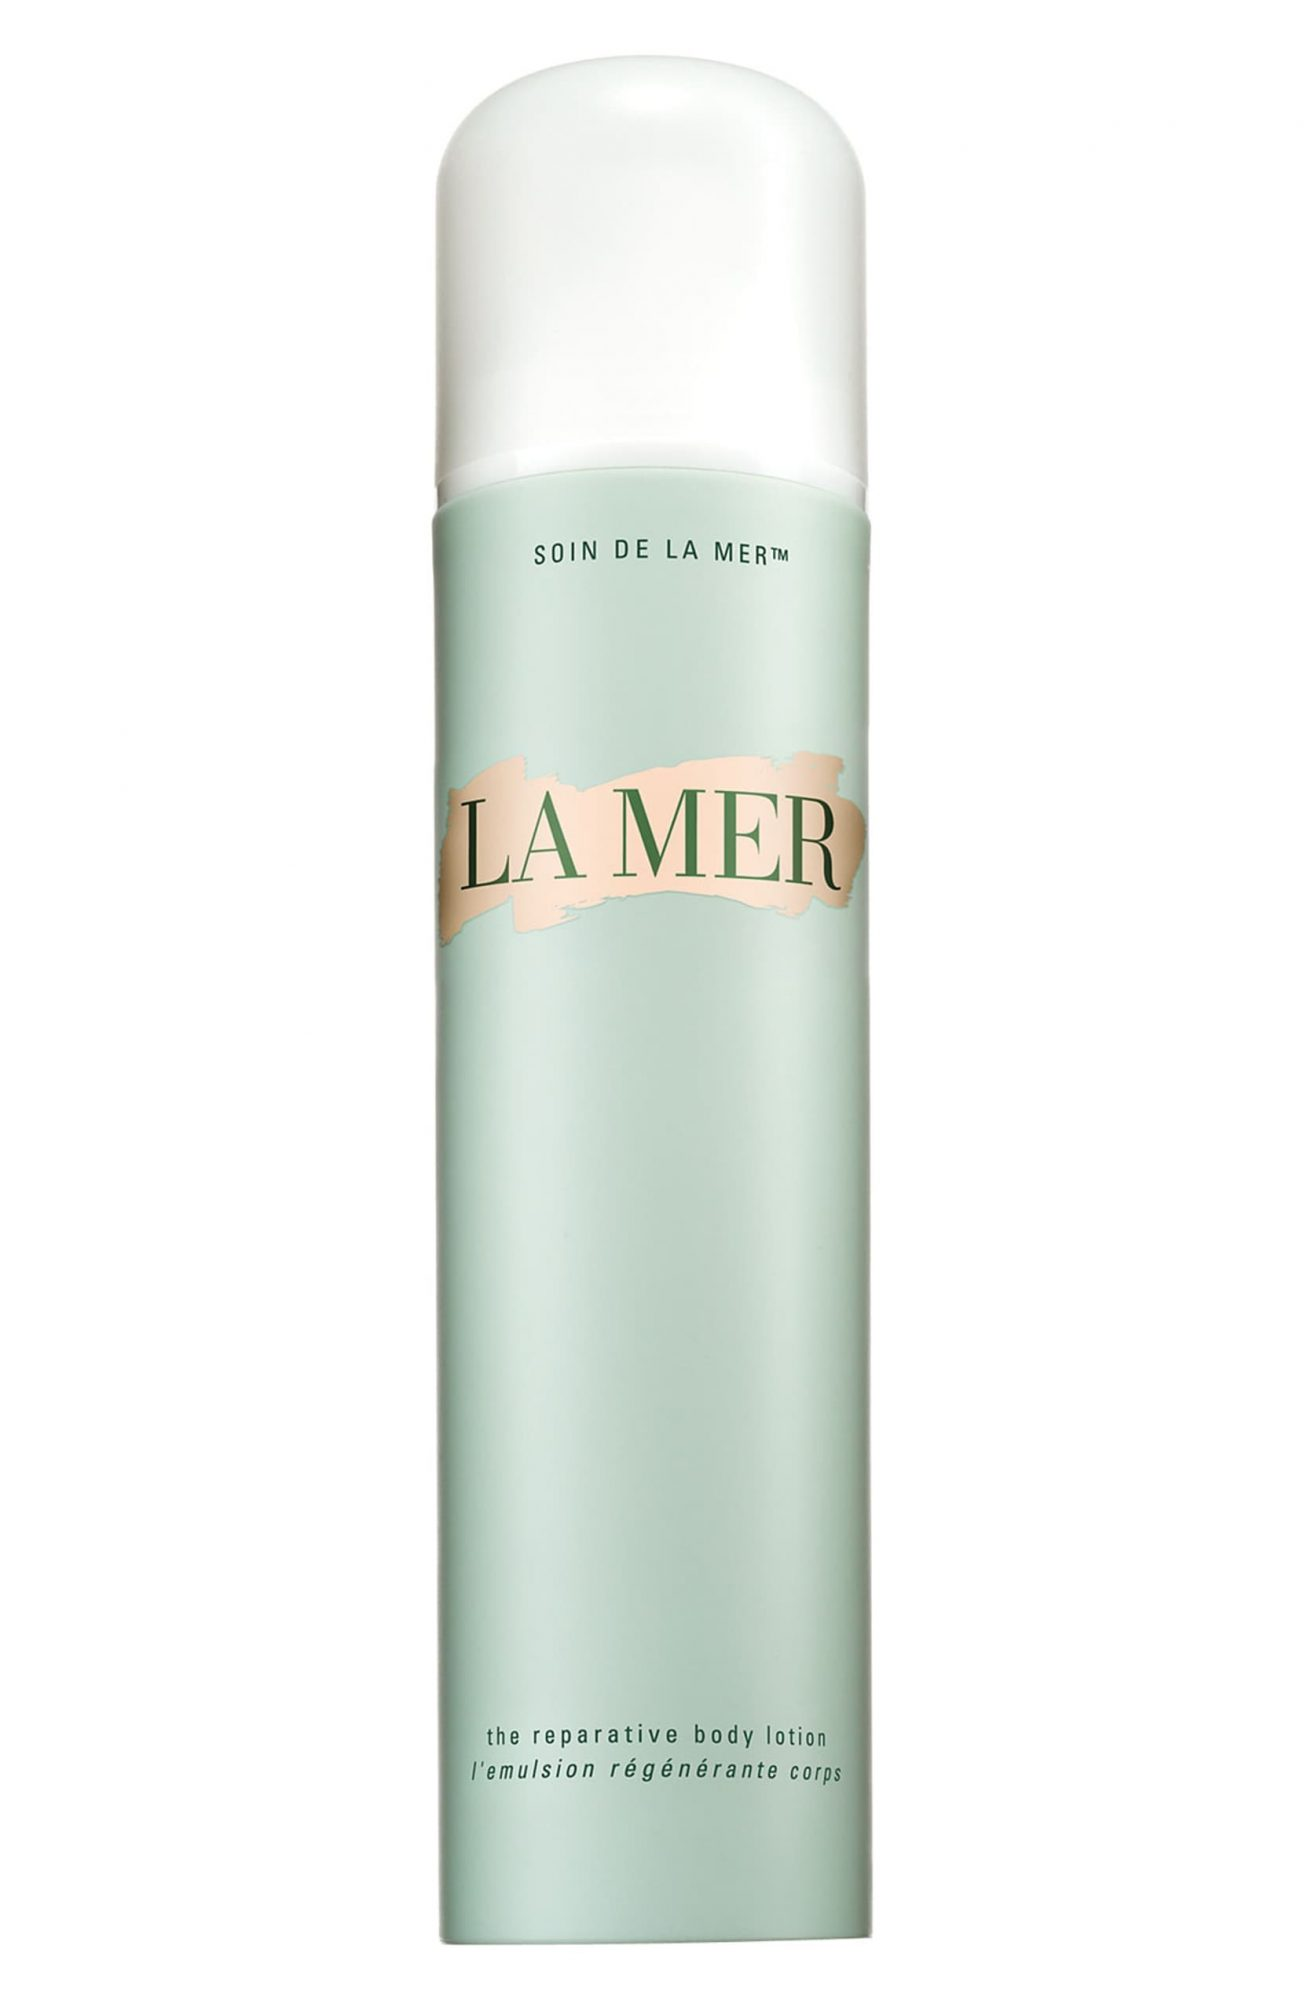 La Mer The Reparative Body Lotion at Nordstrom